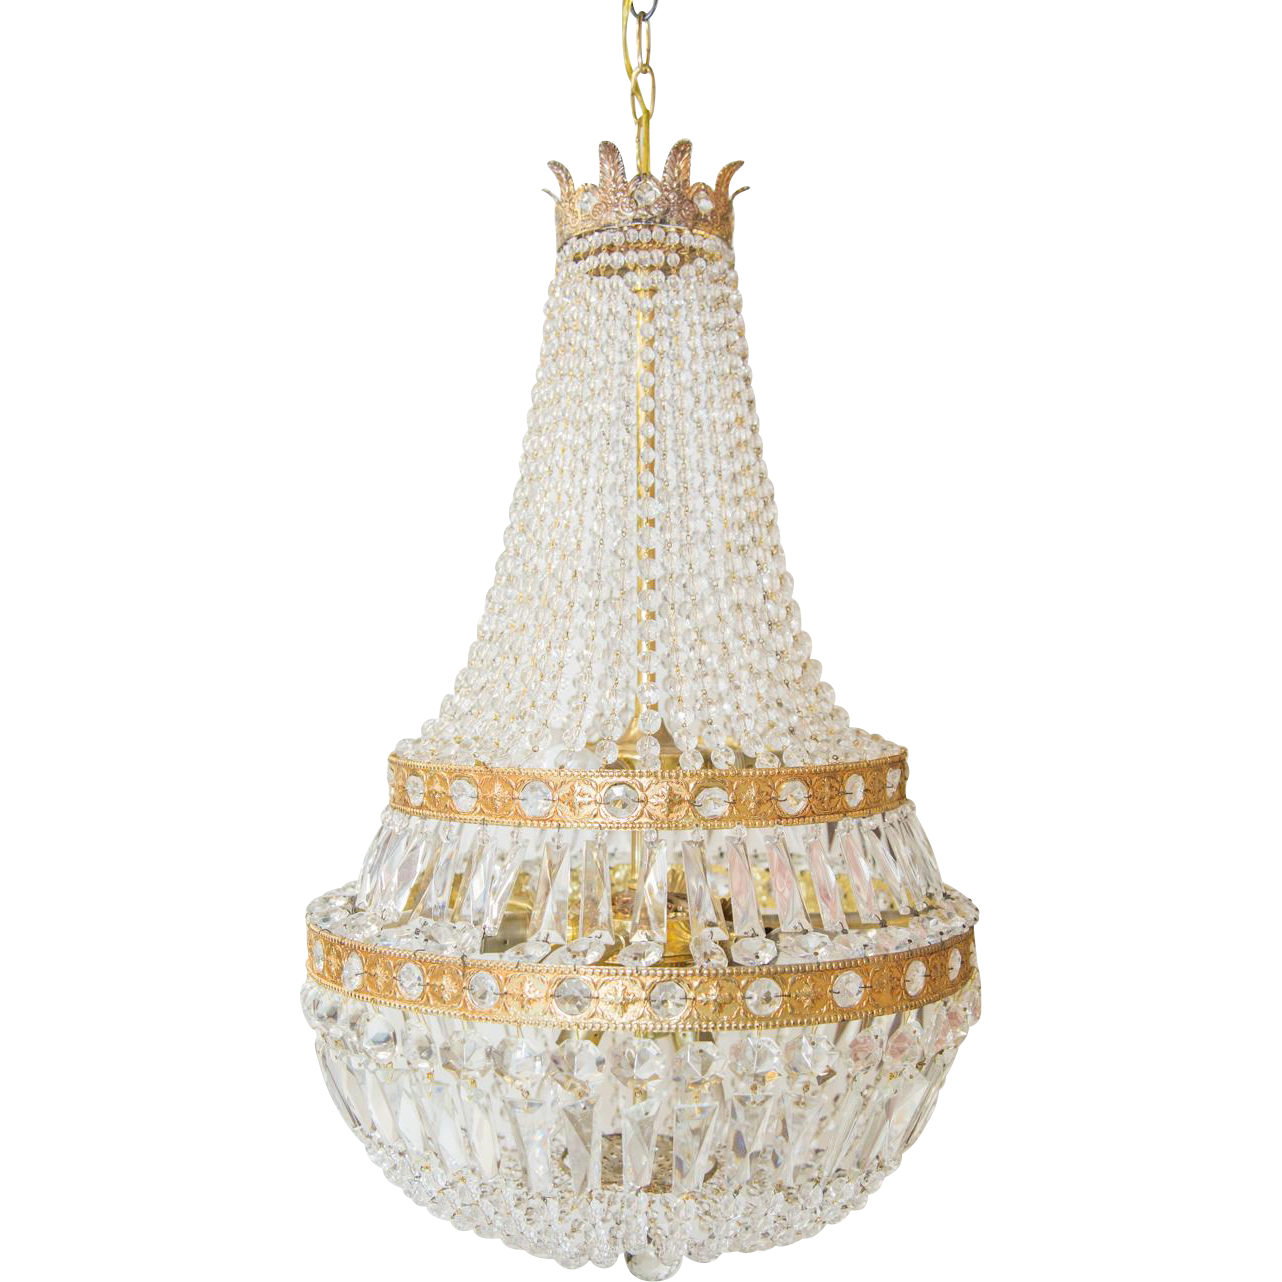 French Empire Style Crystal Chandelier Sack of Pearls C 1900 from ...